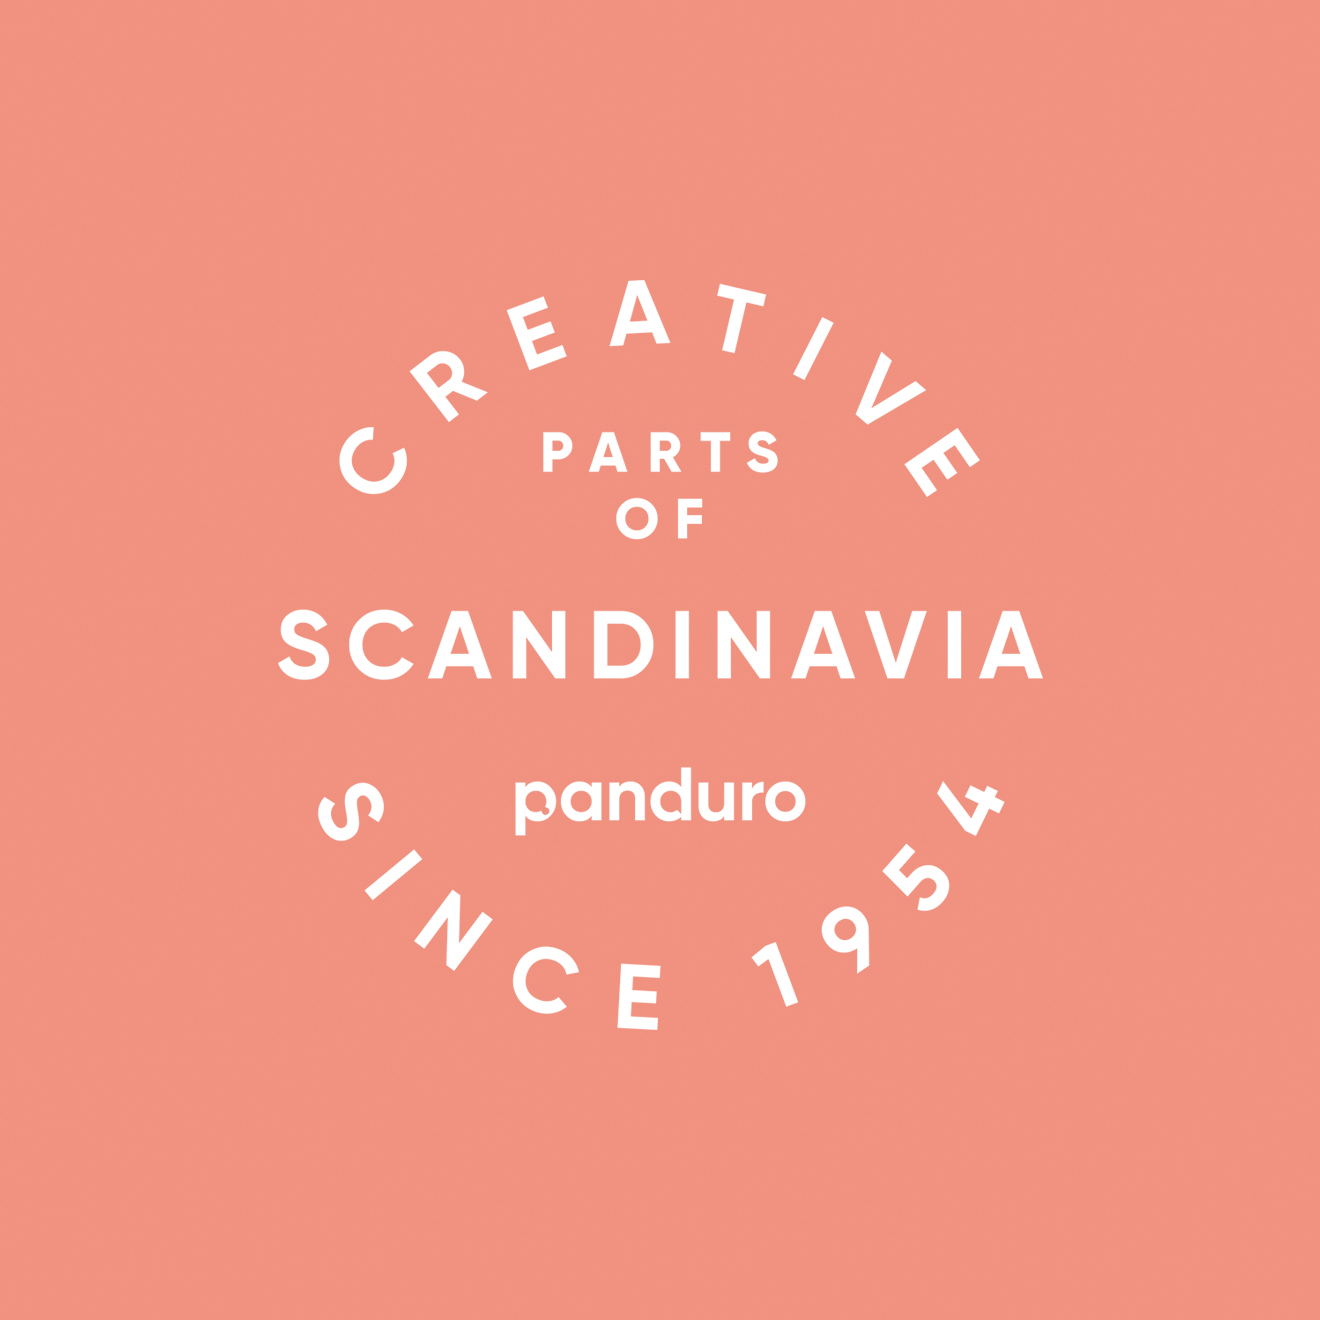 Creative parts of scandinavia